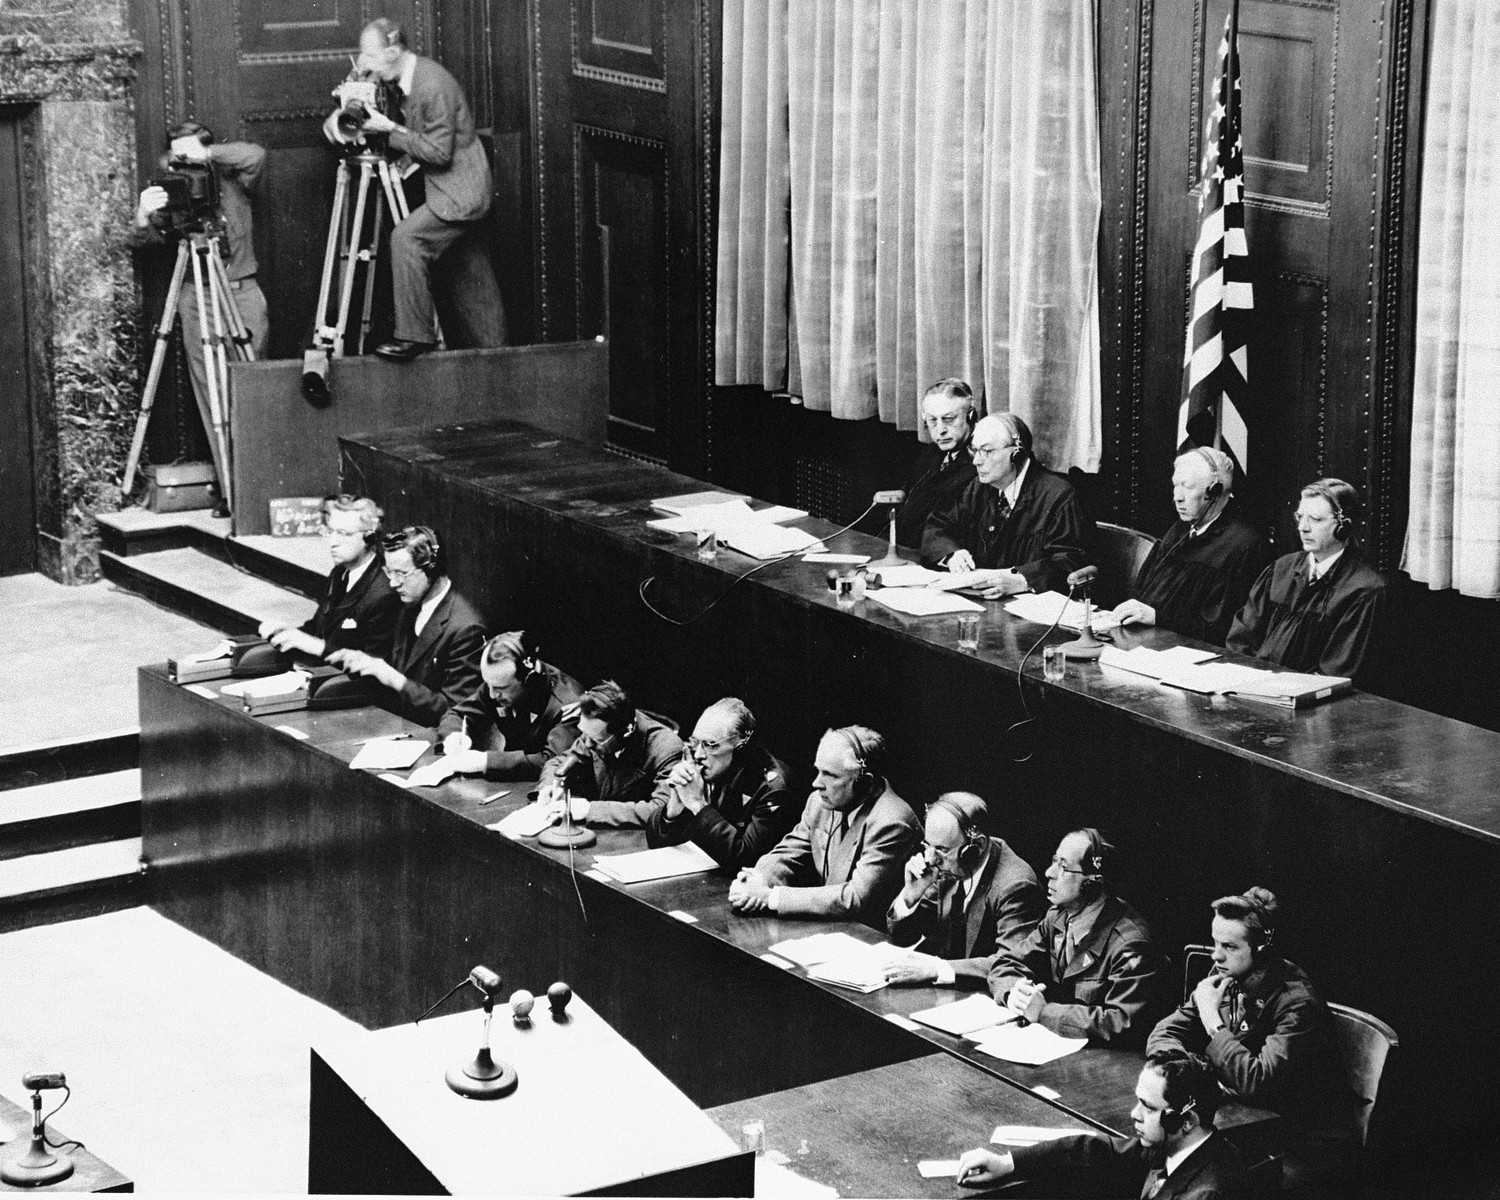 View of the tribunal during a session of the Medical Case (Doctors') Trial in Nuremberg.  In the foreground are the court reporters.